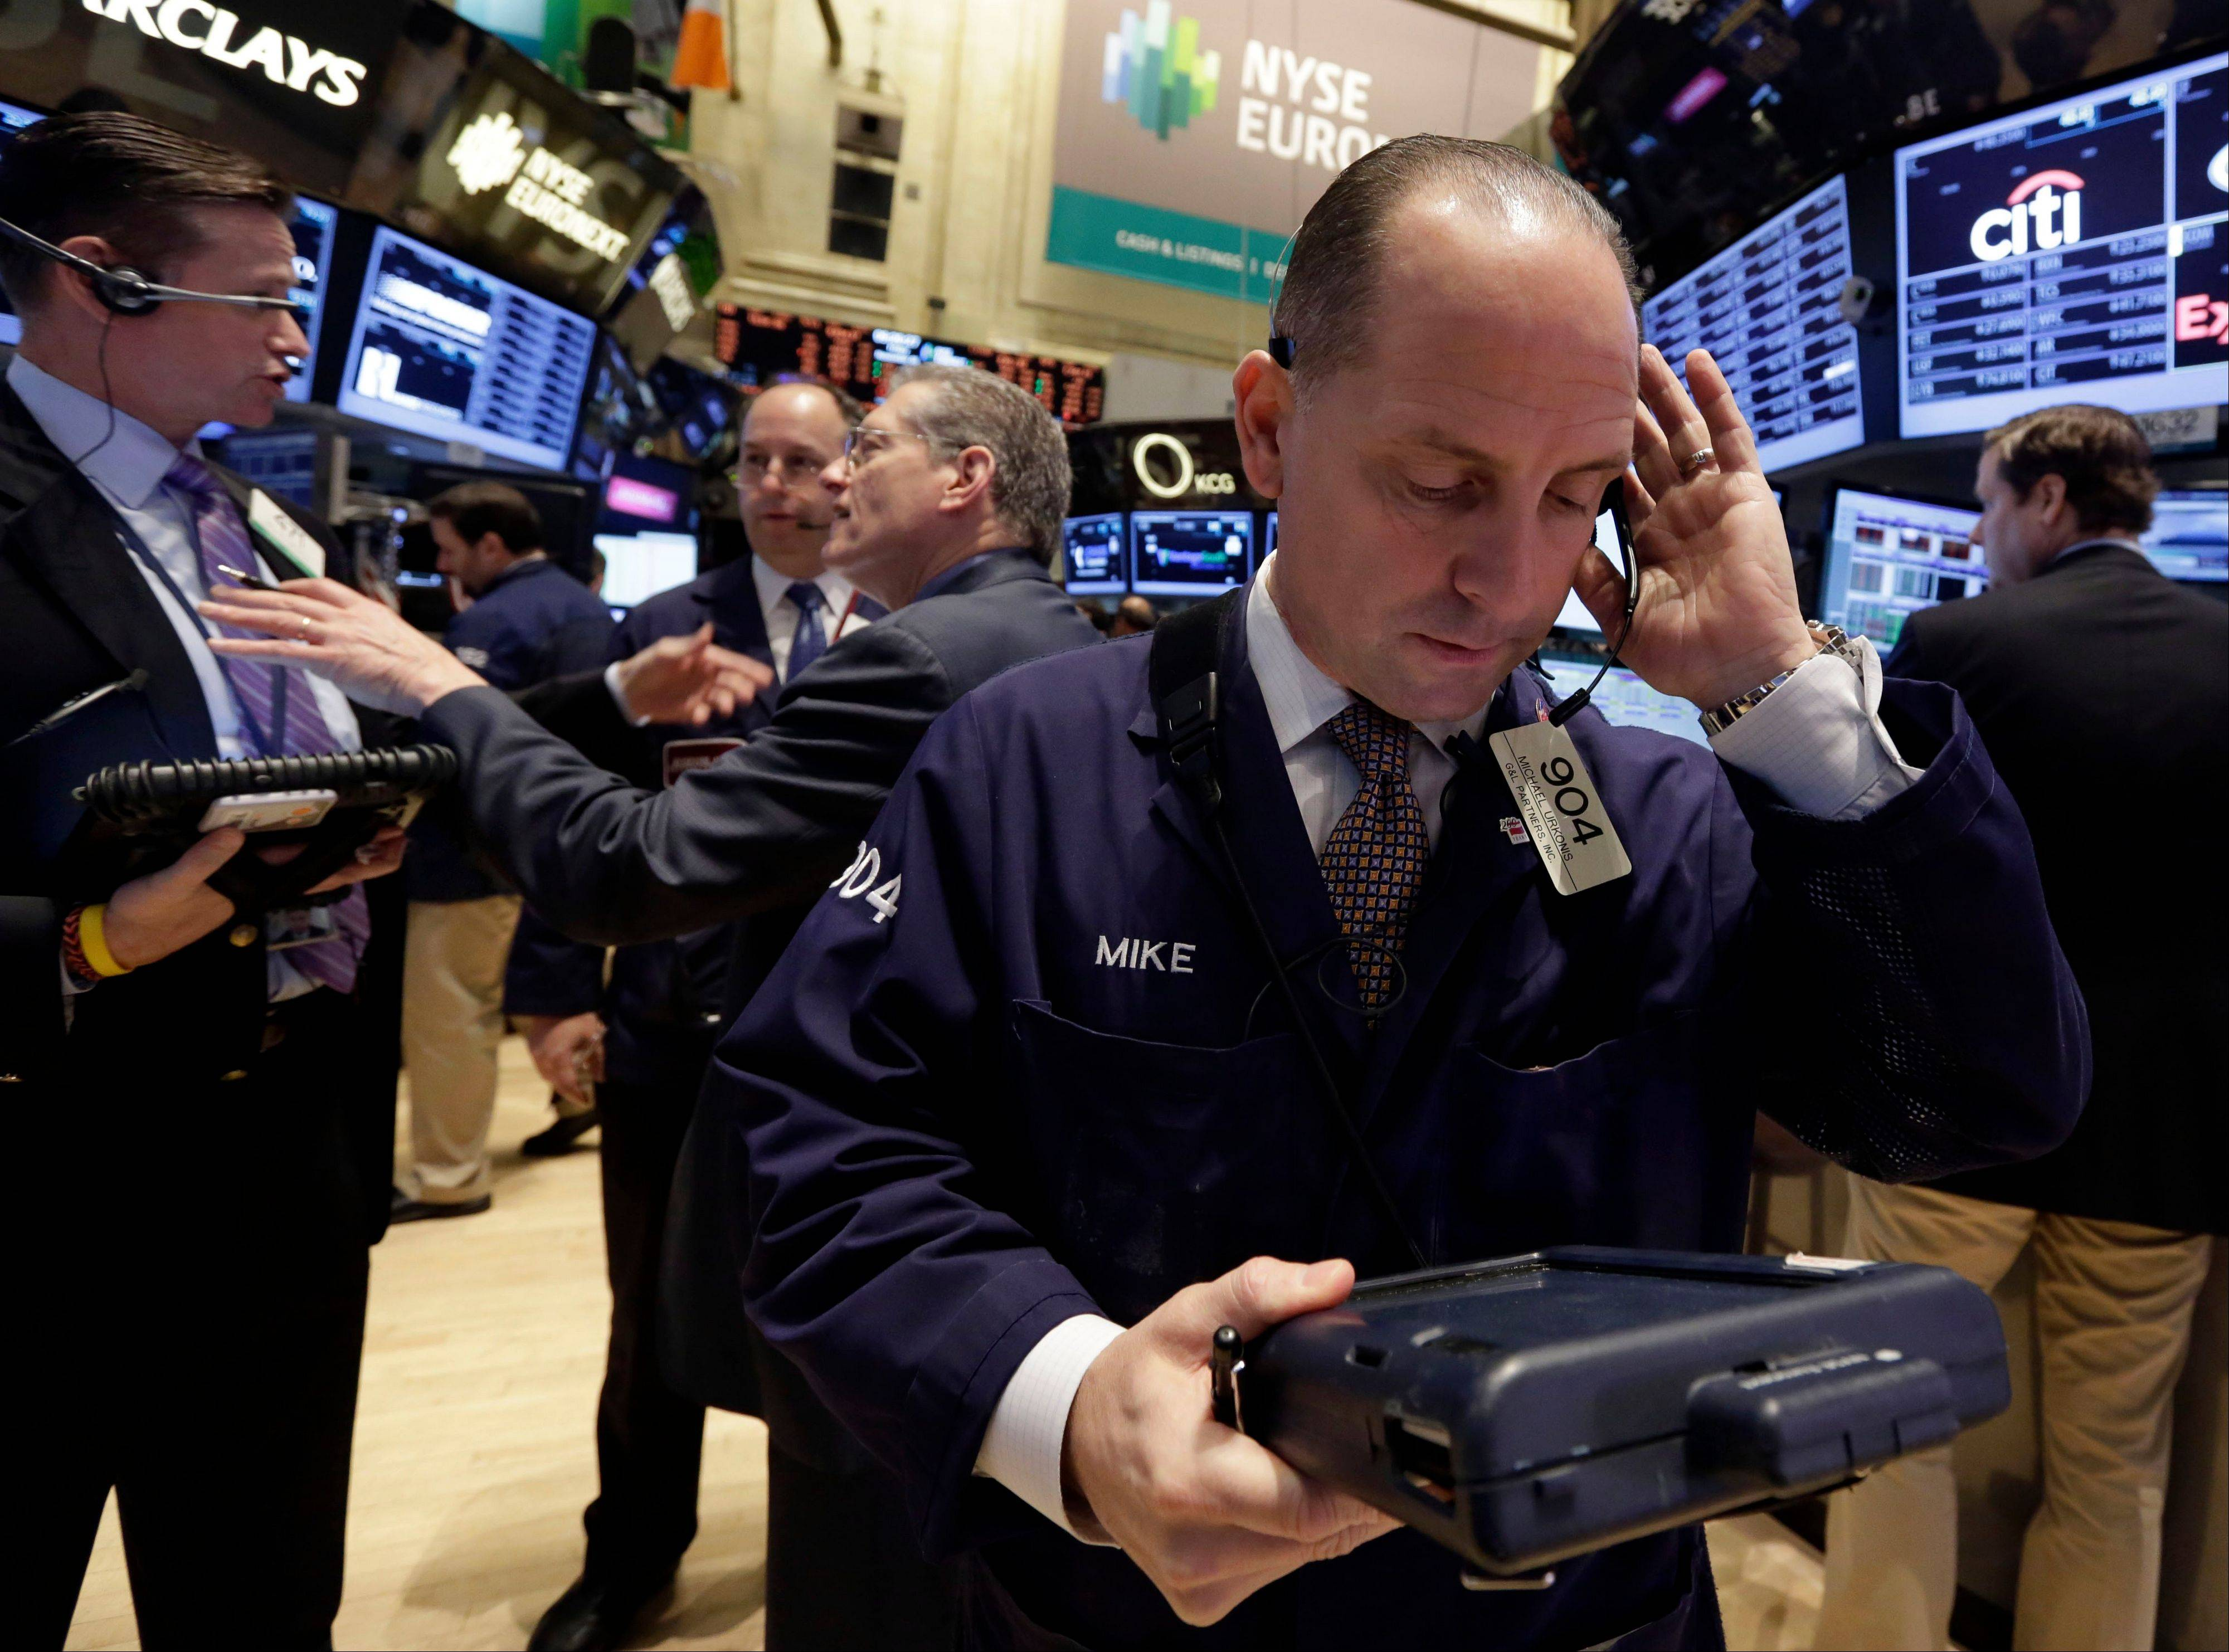 U.S. stocks rose Monday, with the Dow Jones Industrial Average extending a record, as investors awaited retailer earnings reports to gauge the strength of consumer demand and the likelihood of cuts to monetary stimulus.